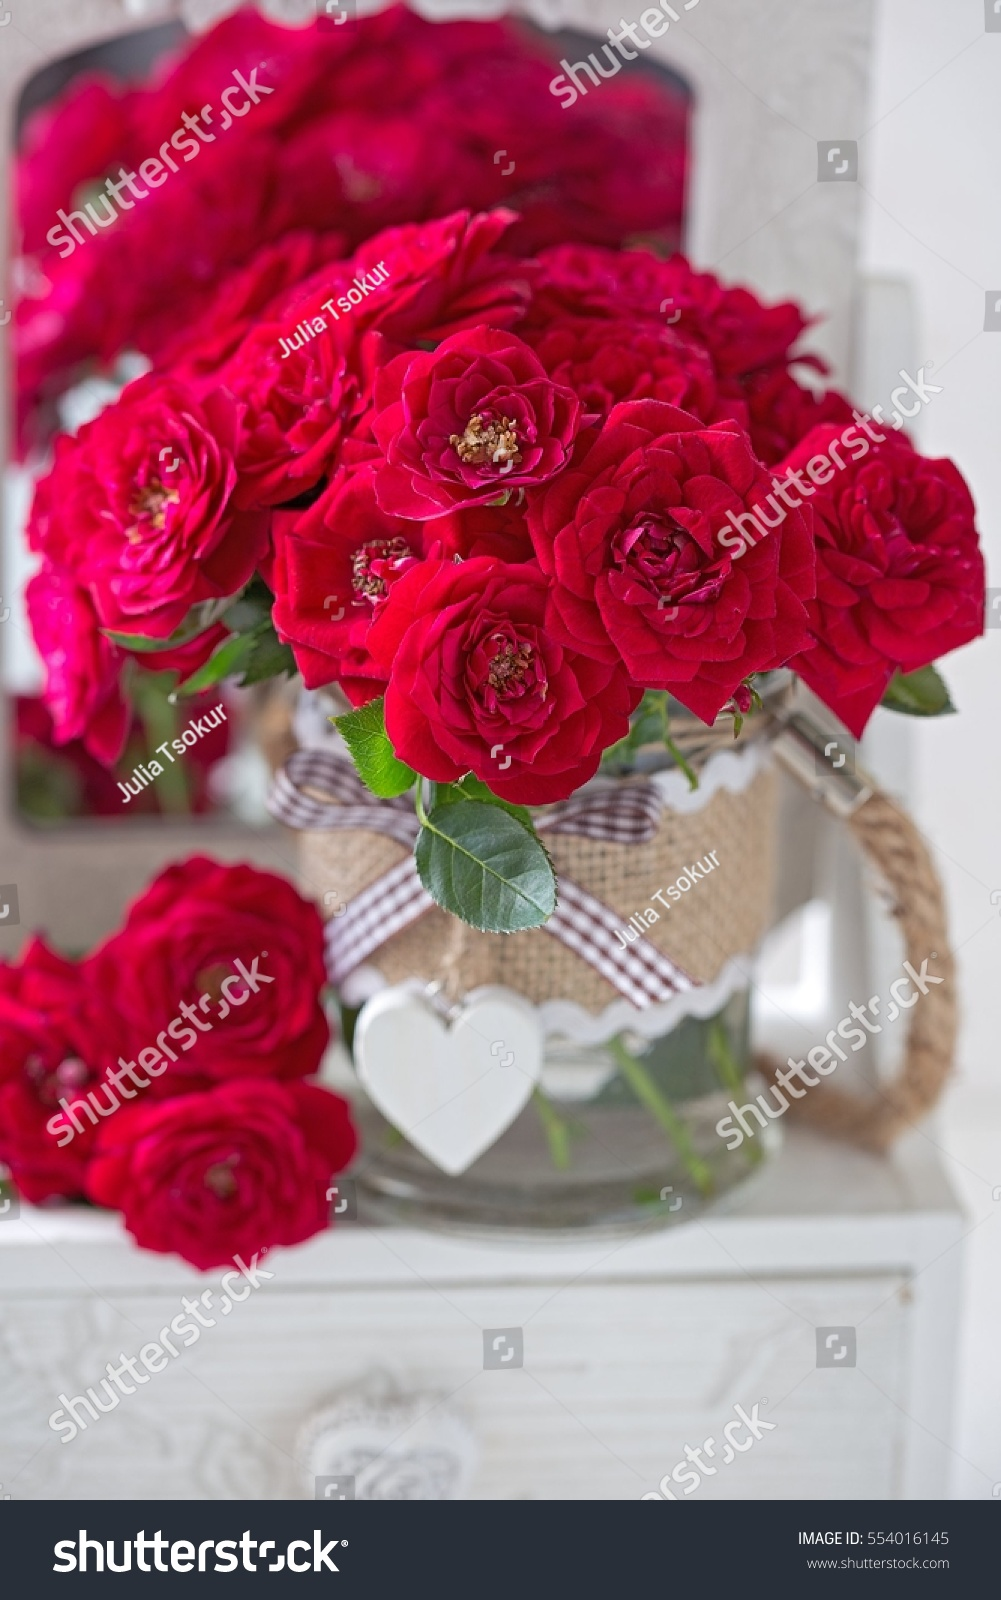 Beautiful red roses lovely bunch flowers stock photo edit now beautiful red roses lovely bunch of flowers autiful fresh roses in a vase decorated izmirmasajfo